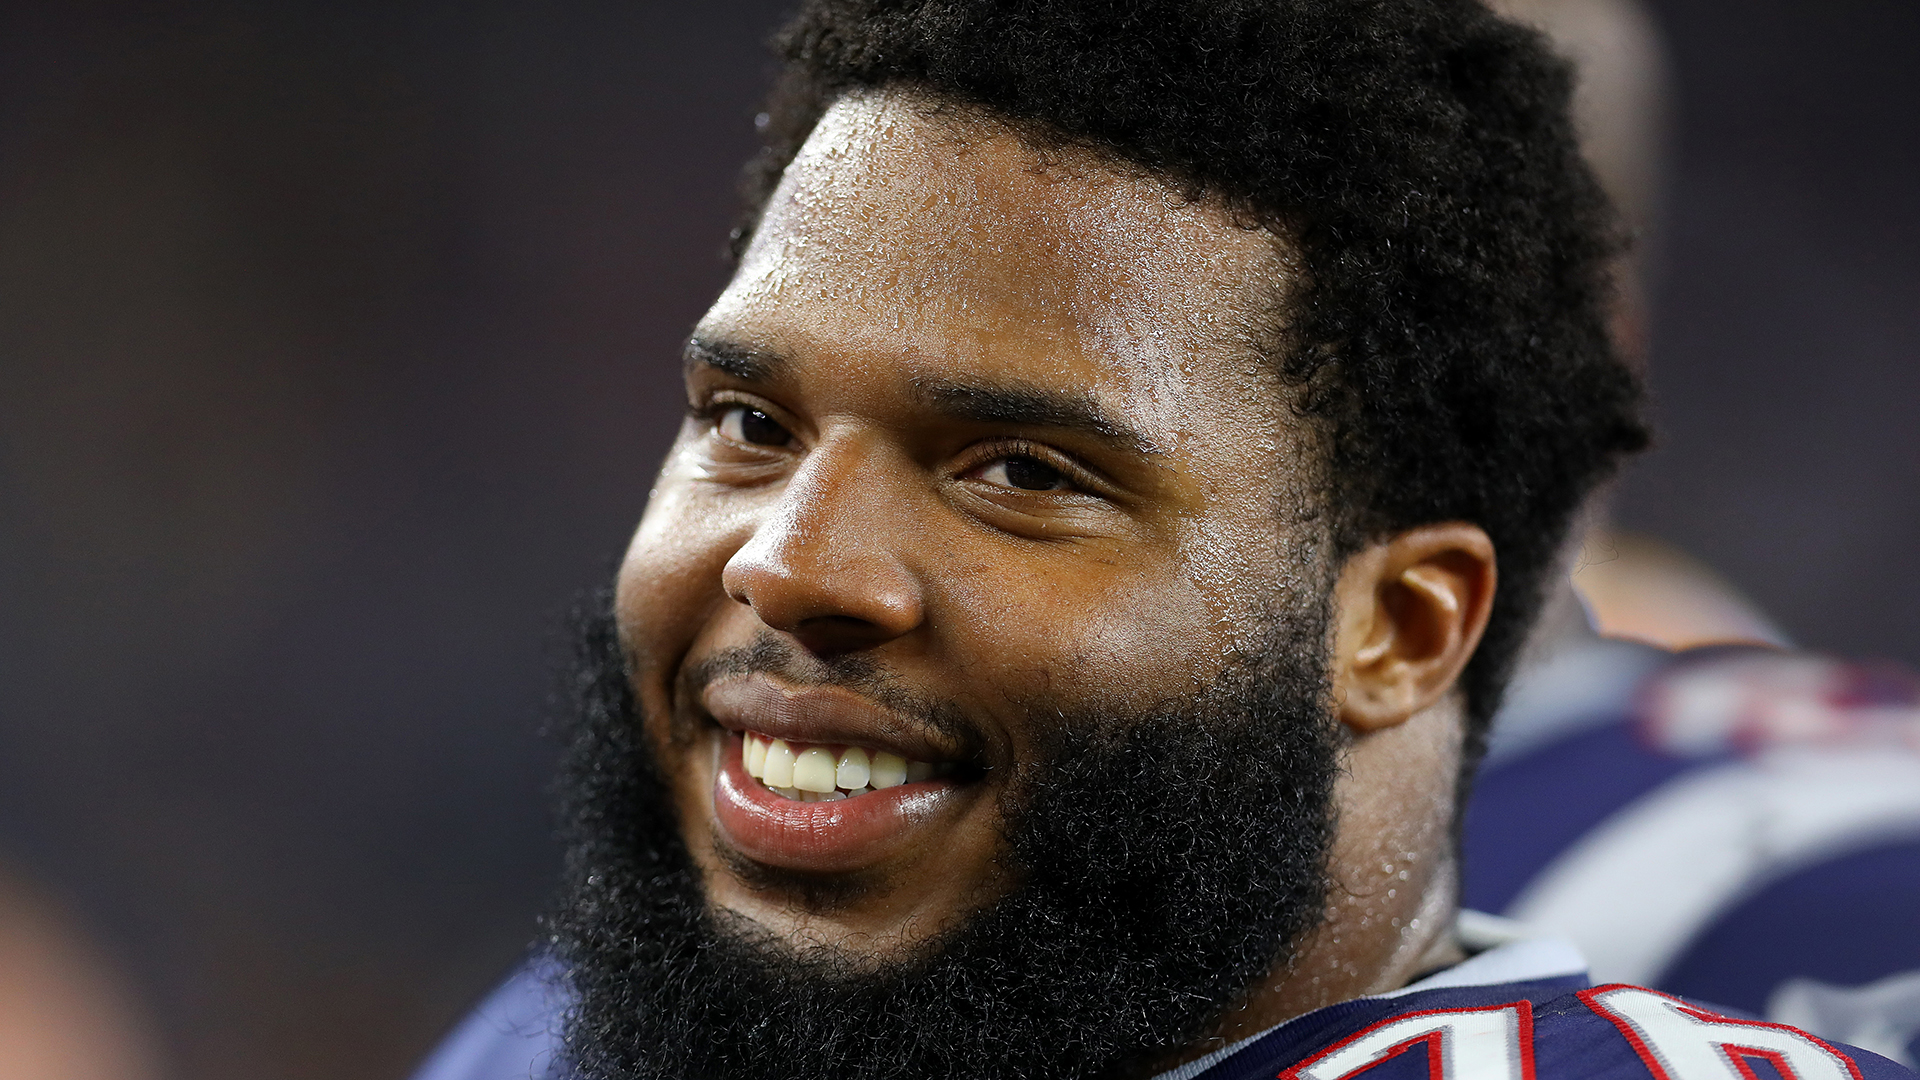 Isaiah Wynn injury update: Patriots offensive lineman (foot) to be placed on IR, report says